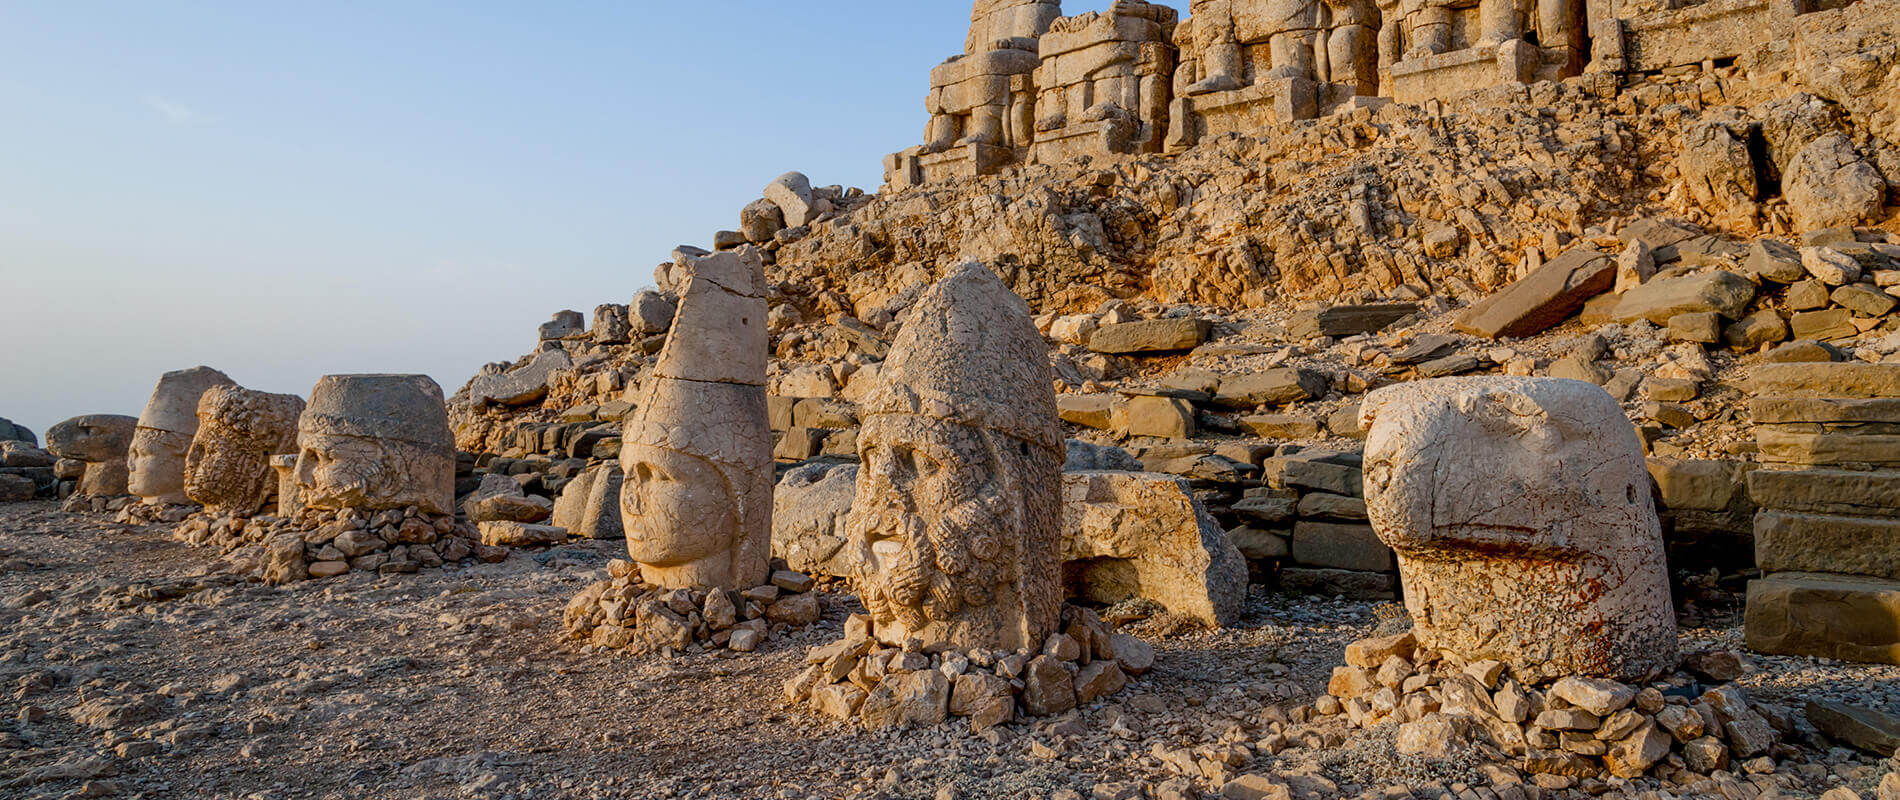 Mount Nemrut, the Archaeological Site of Colossal Stones